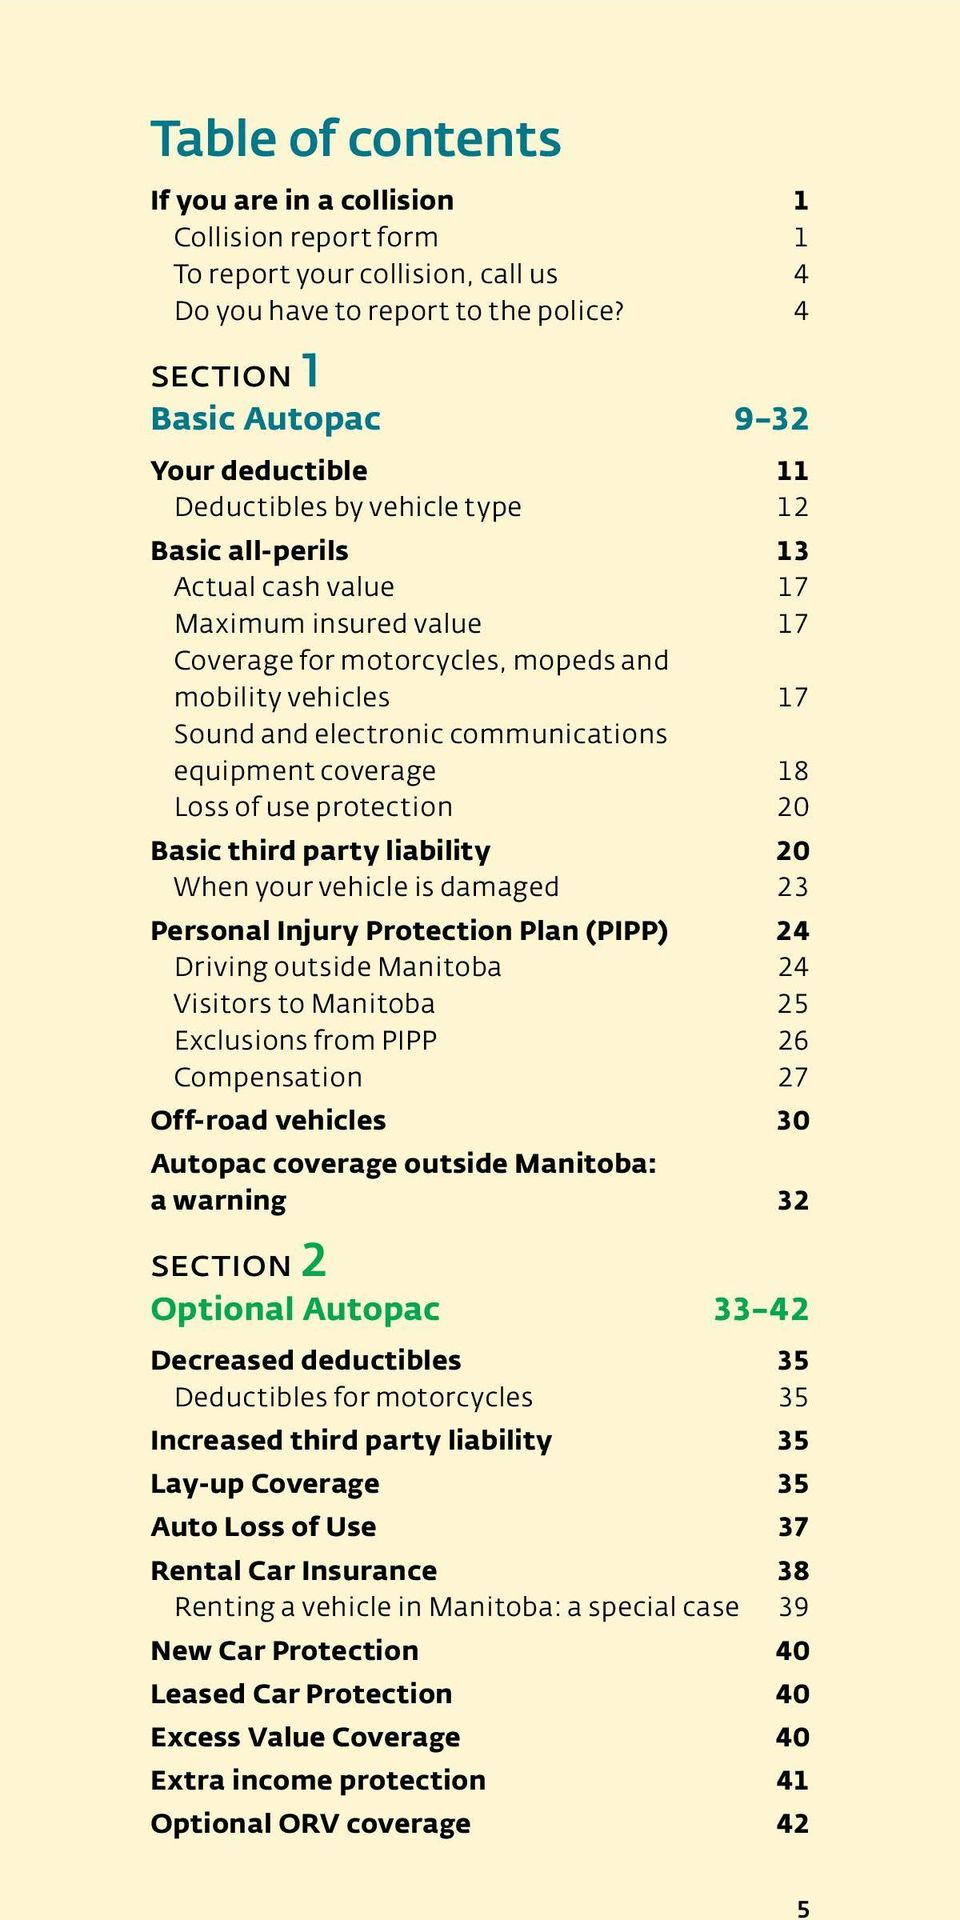 vehicles 17 Sound and electronic communications equipment coverage 18 Loss of use protection 20 Basic third party liability 20 When your vehicle is damaged 23 Personal Injury Protection Plan (PIPP)